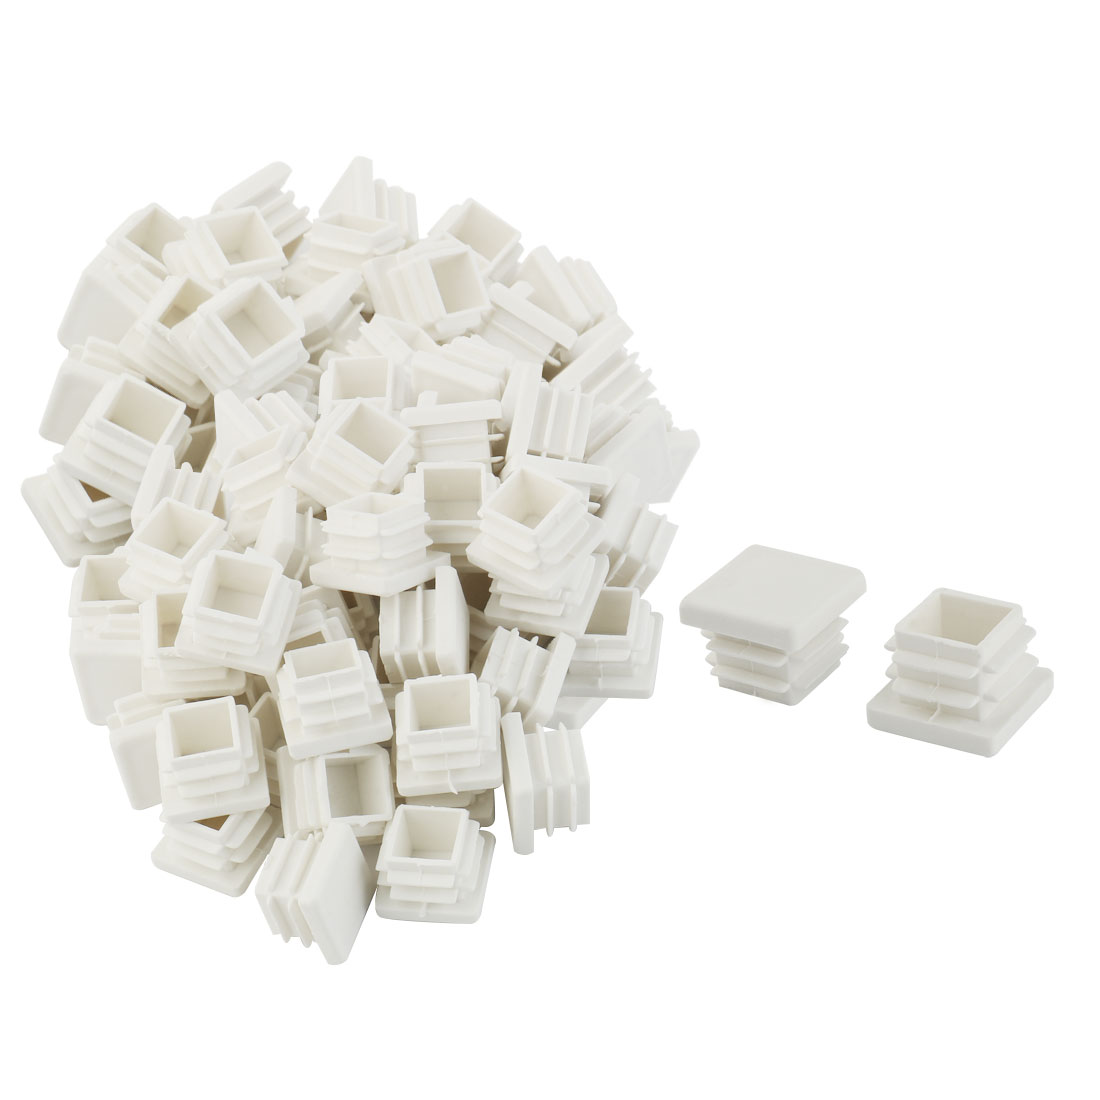 Plastic Floor Protector Chair Leg Tube Insert Blanking Cover Cap White 17 x 17mm 100pcs